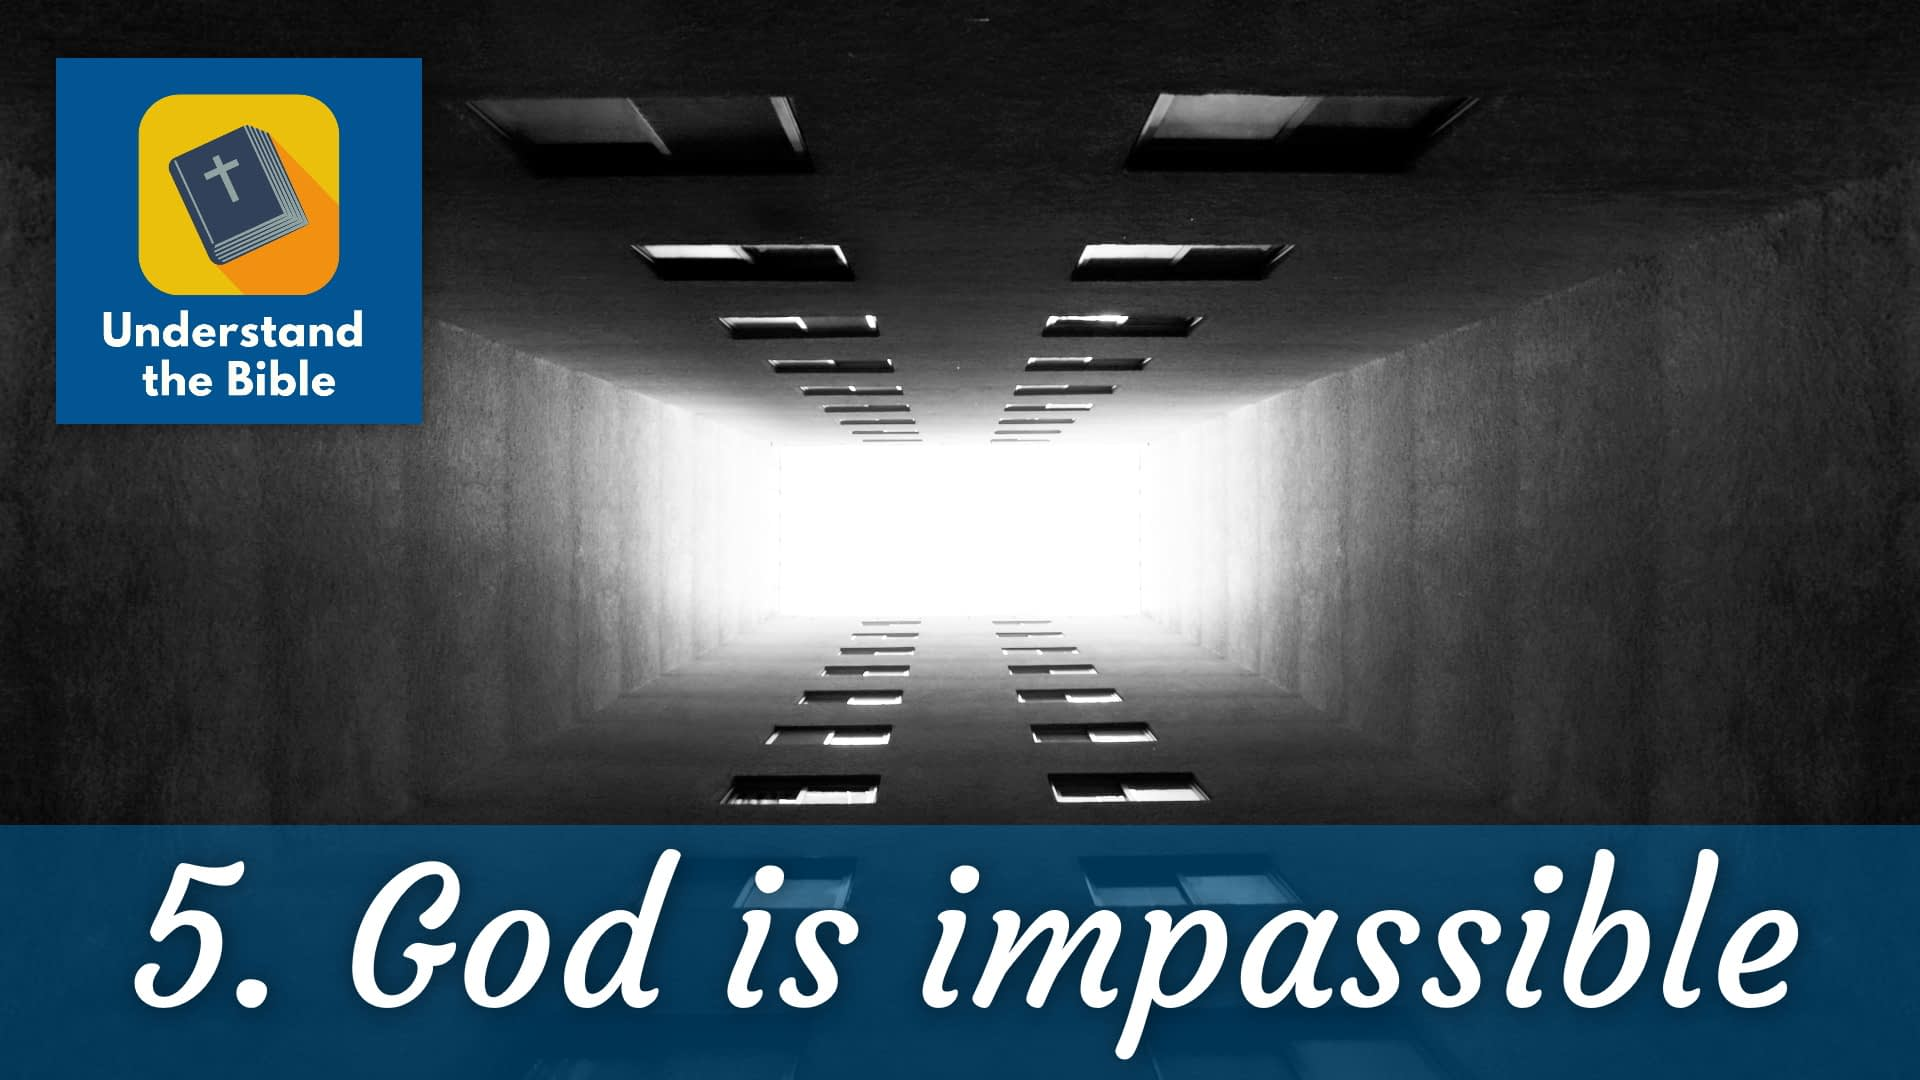 God is… impassible (without passions)